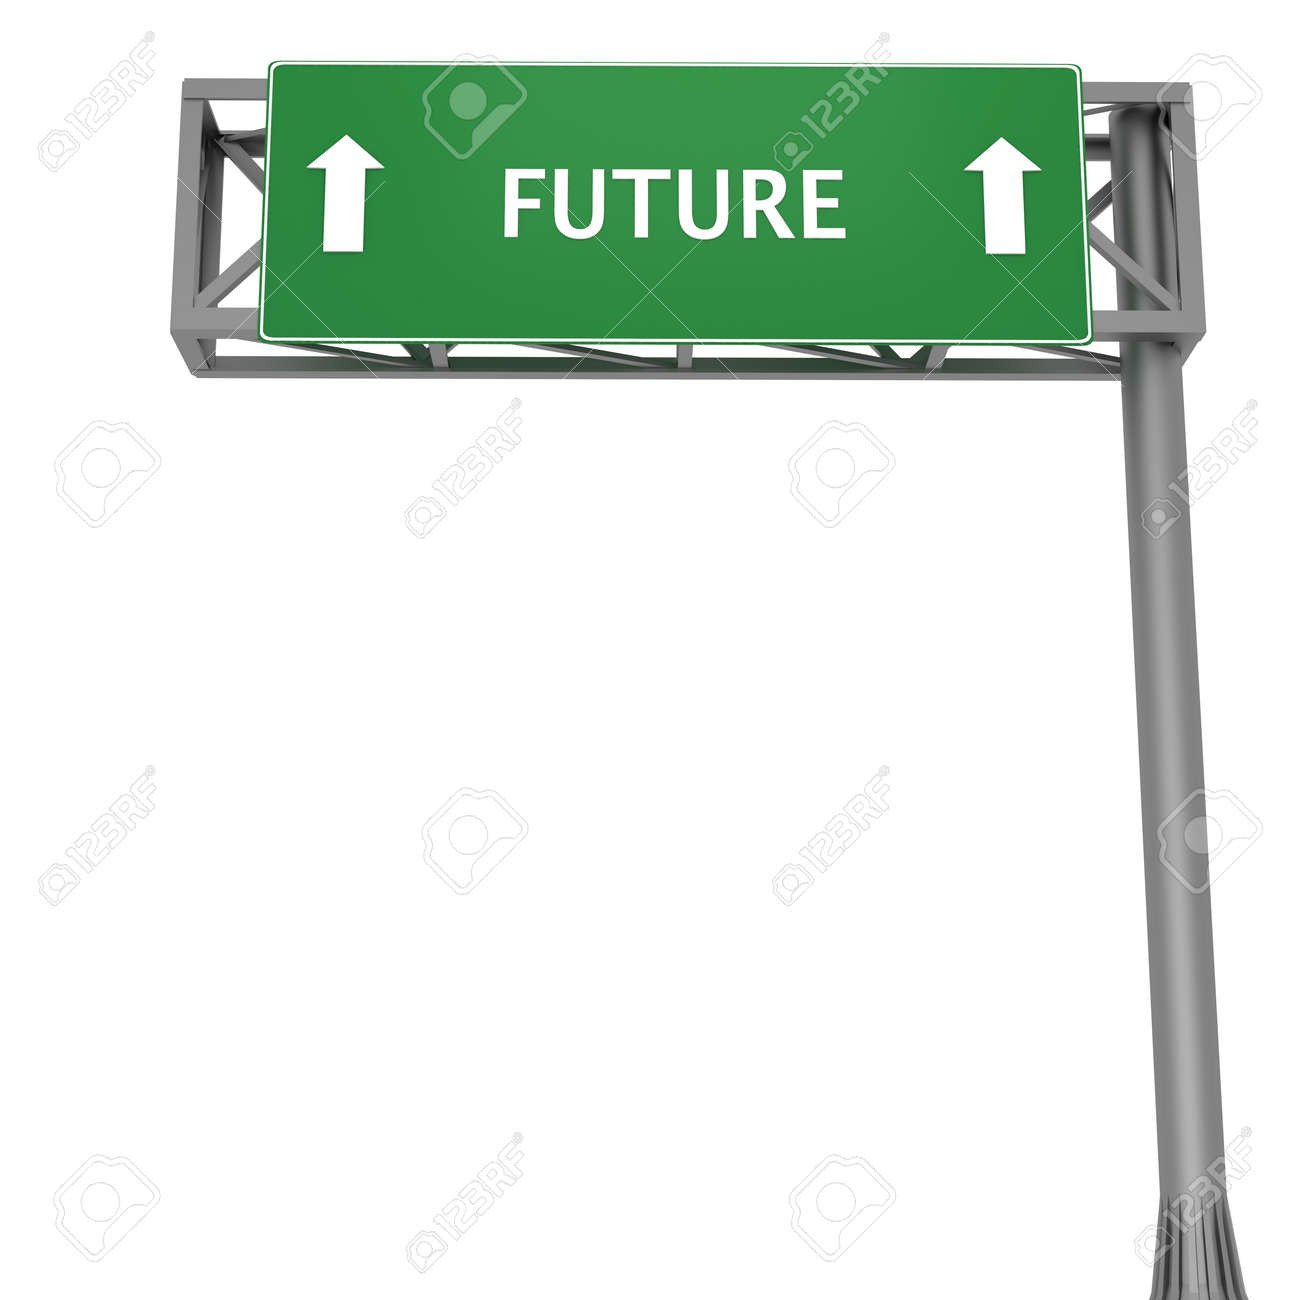 Highway signboard pointing forward displaying FUTURE Stock Photo - 11868659